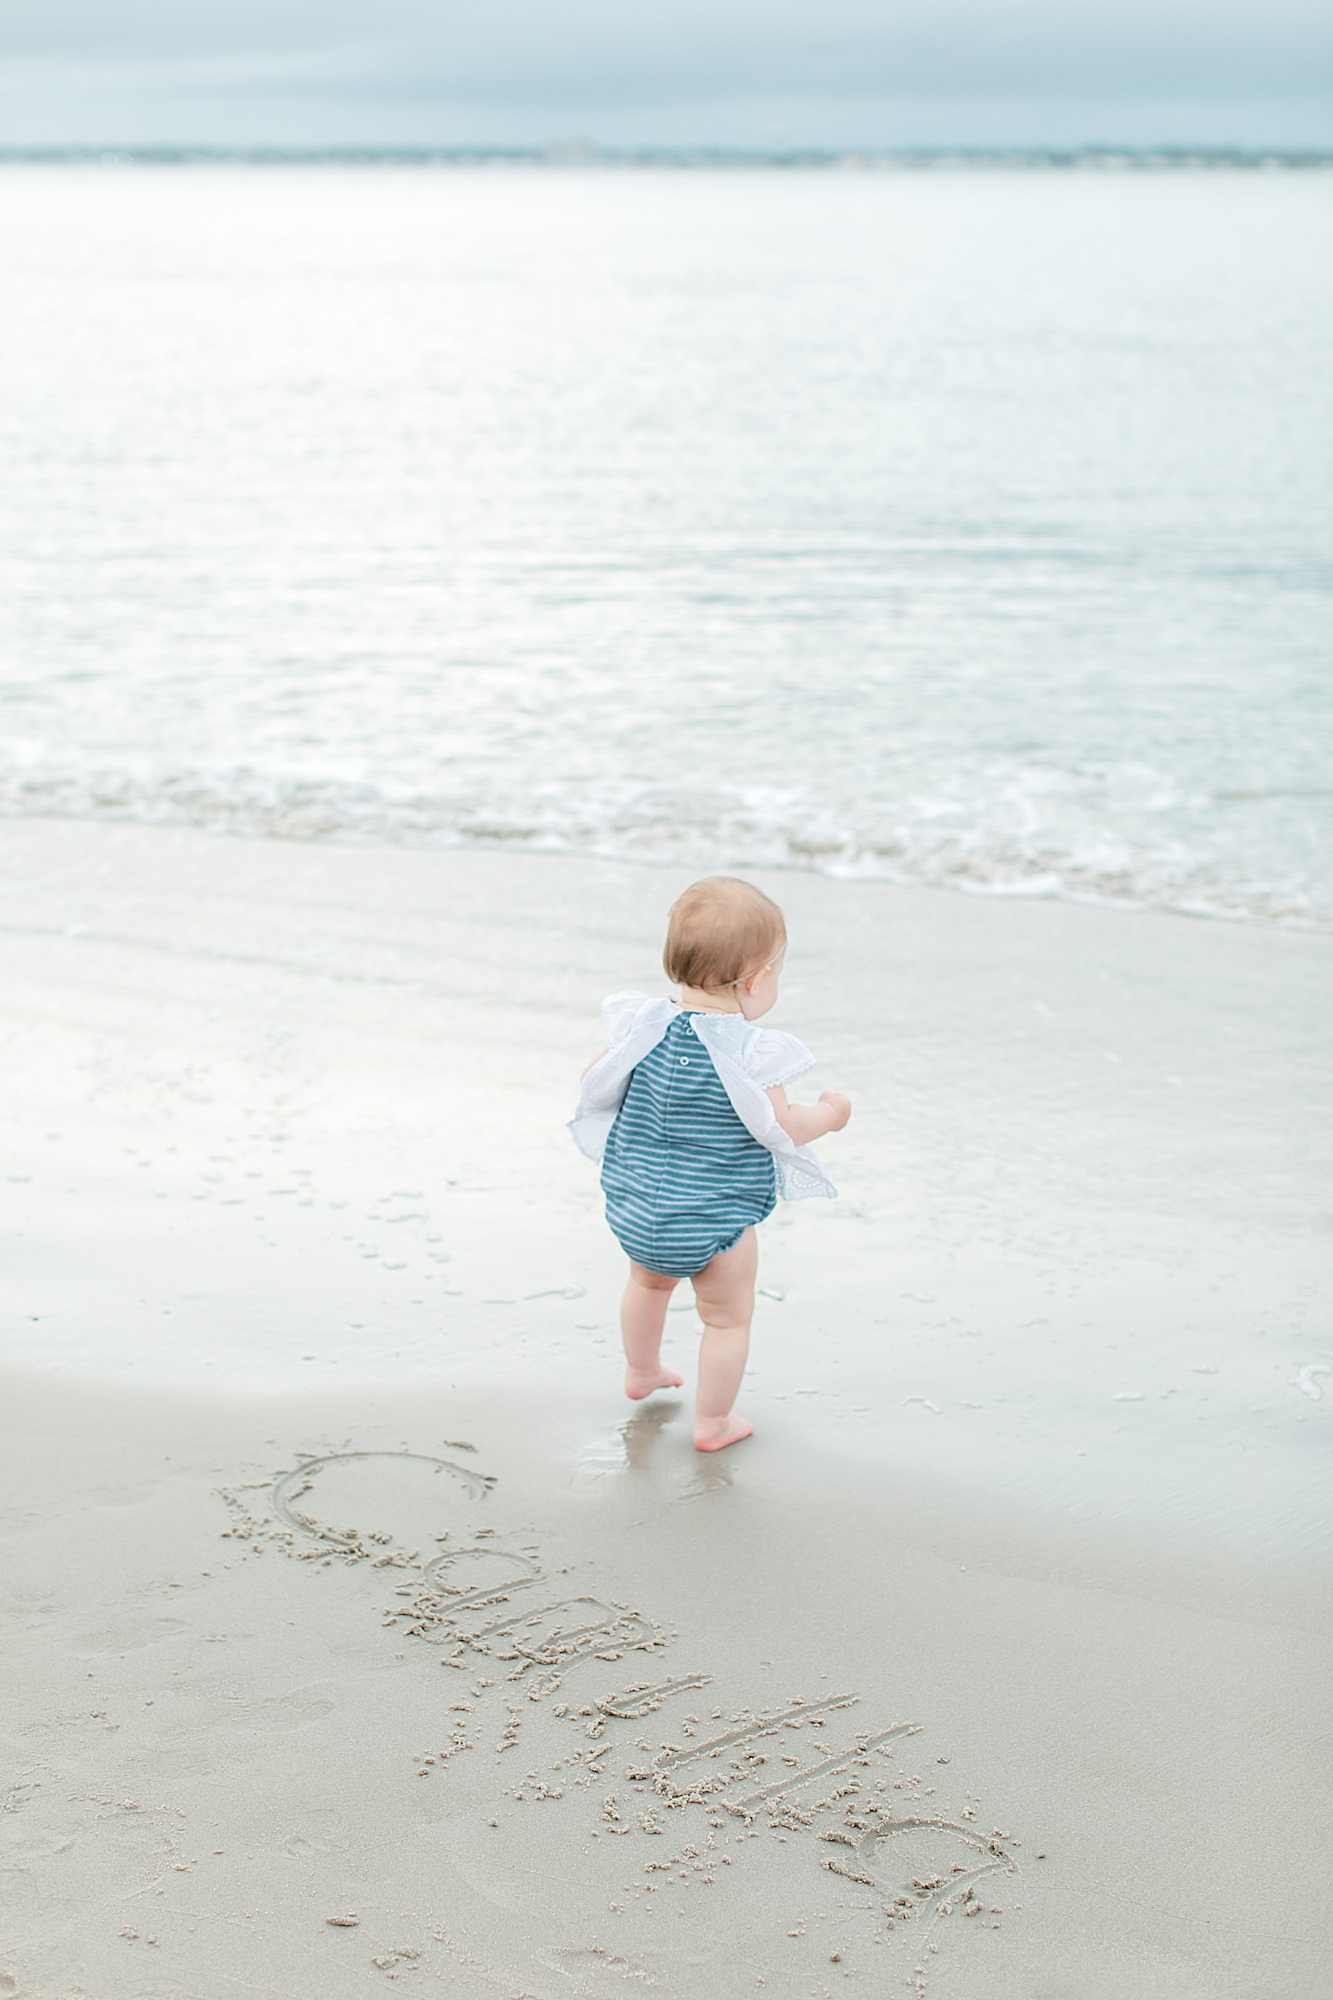 Beach Family Photography OCNJ Ocean City NJ by Magdalena Studios 0022